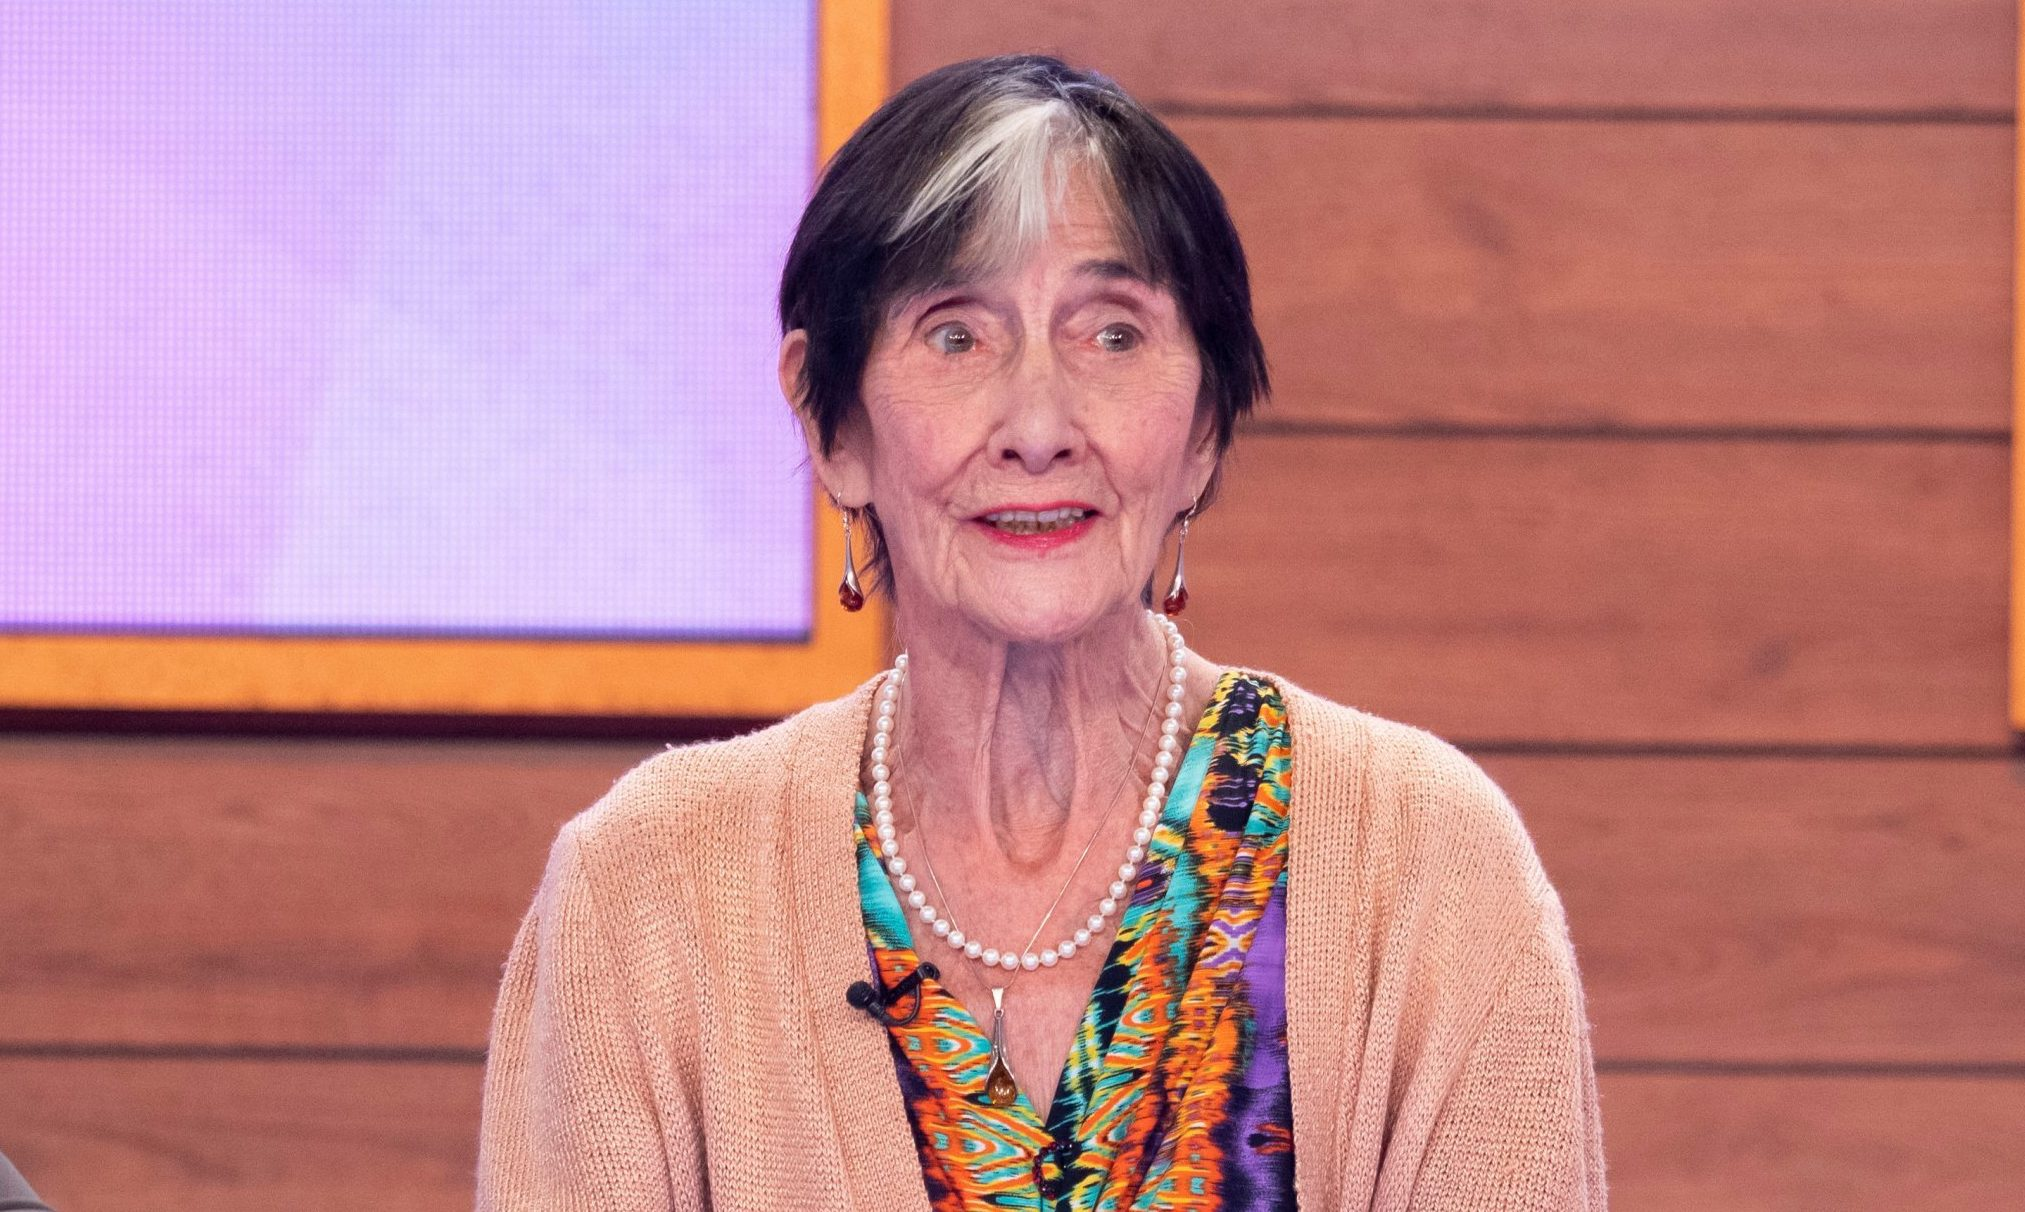 Editorial use only Mandatory Credit: Photo by Ken McKay/ITV/REX (10236804m) June Brown 'Loose Women' TV show, London, UK - 14 May 2019 GUEST CHAT: SOAP ROYALTY JUNE BROWN She?s a soap veteran, a national treasure and an EastEnders icon - the legendary June Brown joins us to talk about taking part in the ITV series 'Hard to Please: OAPS', as well as telling us about playing one of our best-loved soap characters Dot Cotton for more than three decades, her increasing struggles with poor eyesight and how she almost had a night out on the tiles with Lady Gaga.